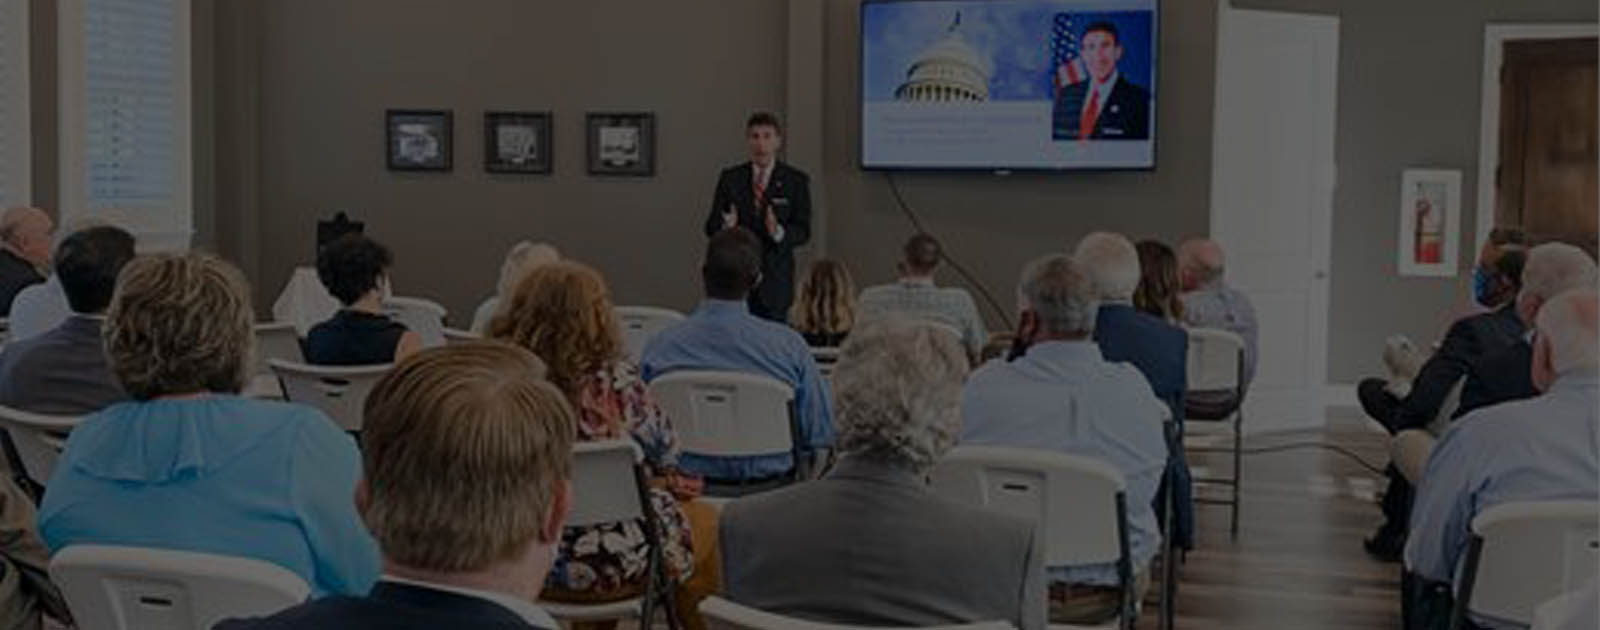 "Congressman David Kustoff Speaks at the Collierville Chamber of Commerce's ""Next Normal Community Leaders Forum"""